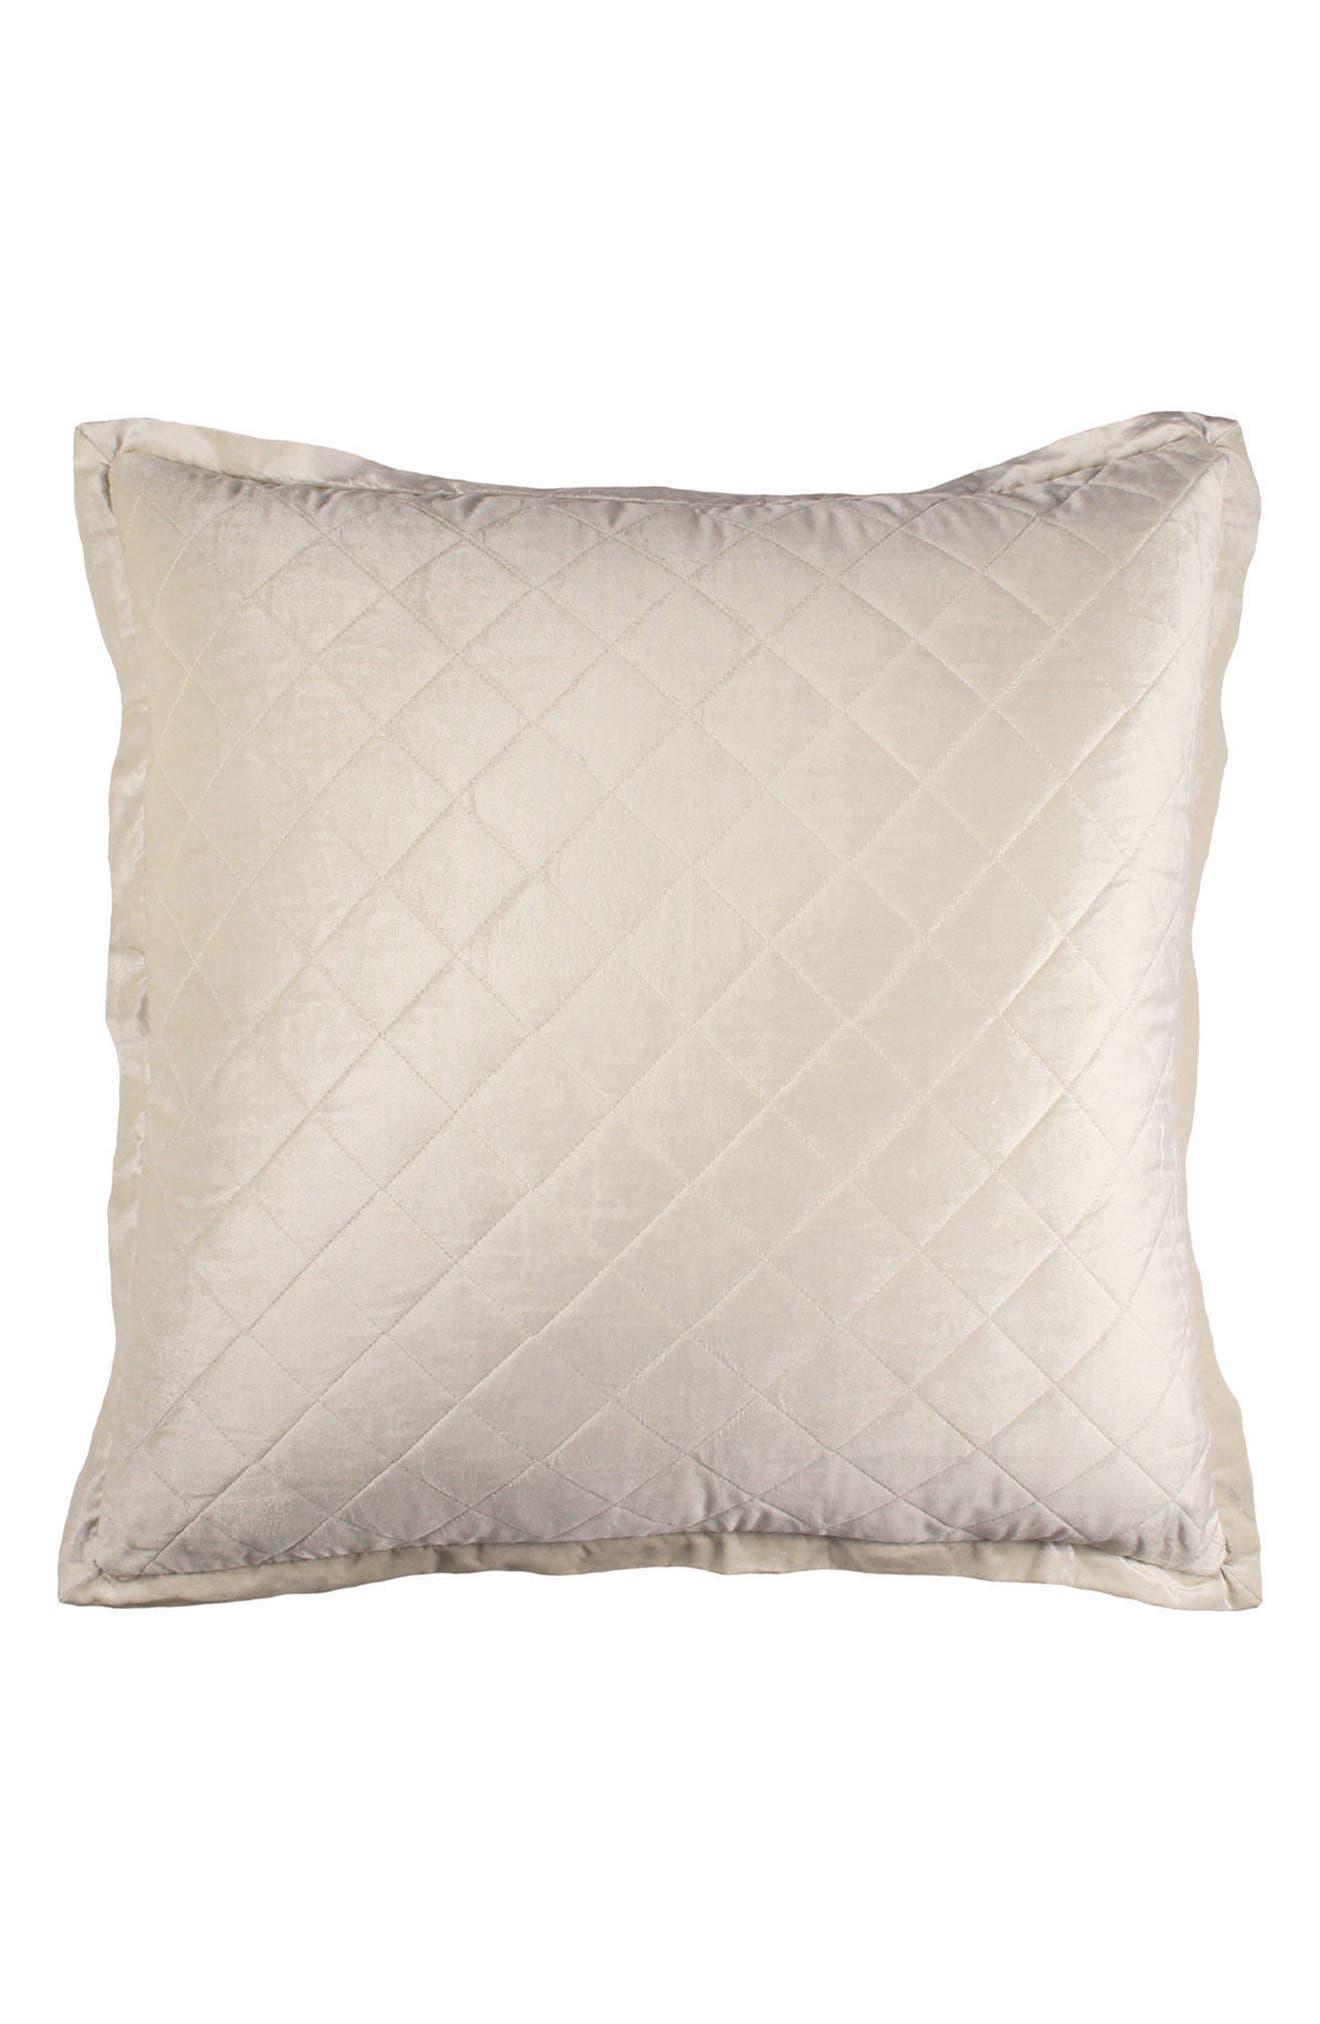 Chloe Quilted Euro Sham,                             Main thumbnail 1, color,                             Ivory